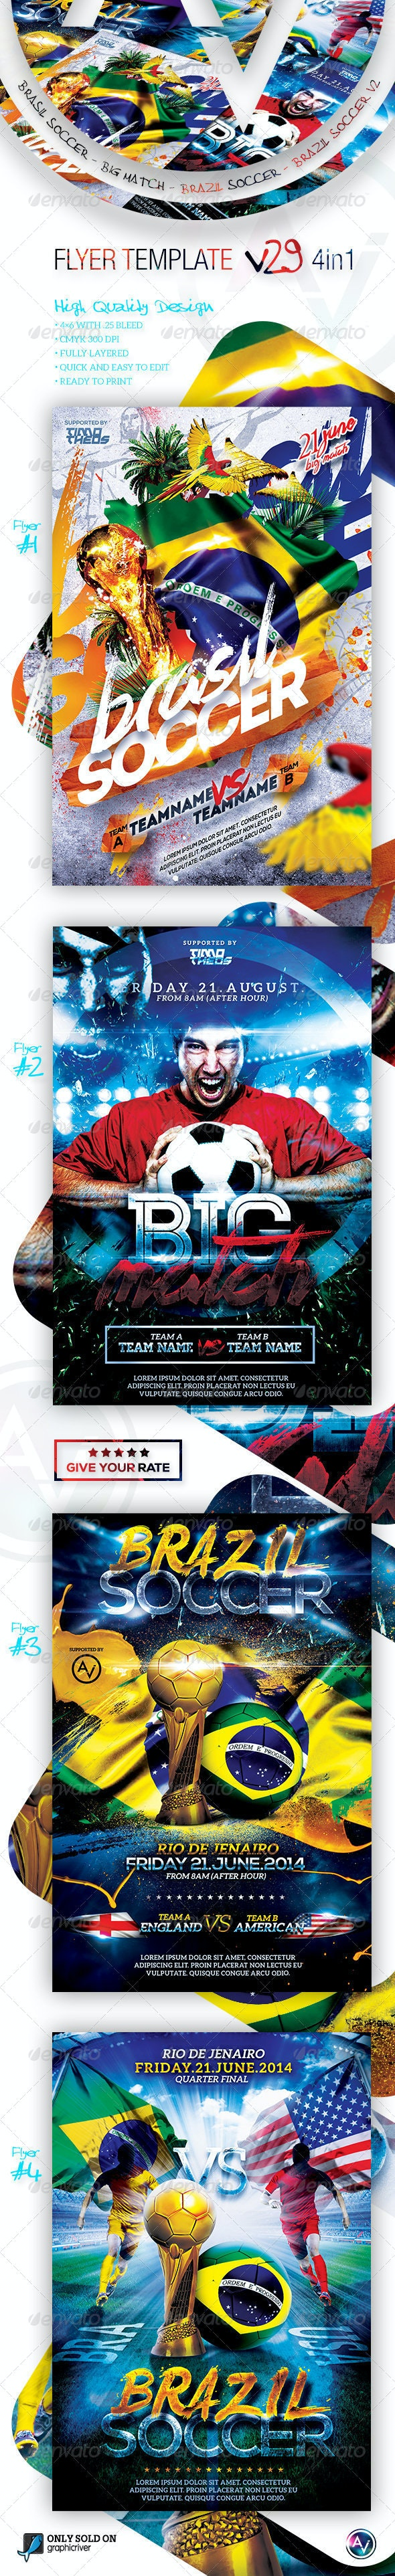 Flyer Bundle Vol29 - 4 in 1 - Sports Events